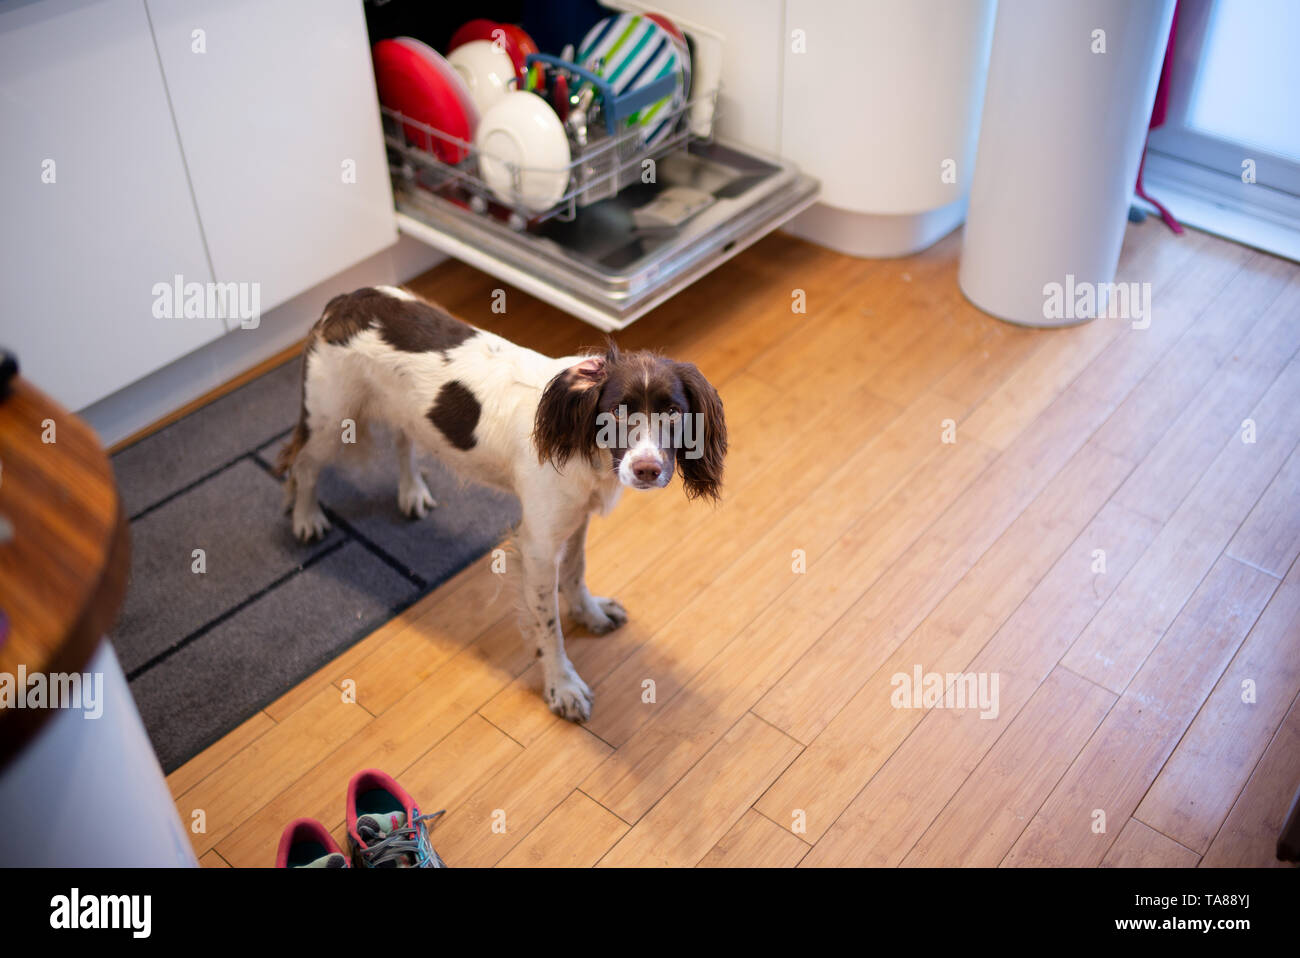 A young English Springer spaniel looks direct to camera whilst stood in the kitchen next to the dishwasher waiting to be fed. Stock Photo